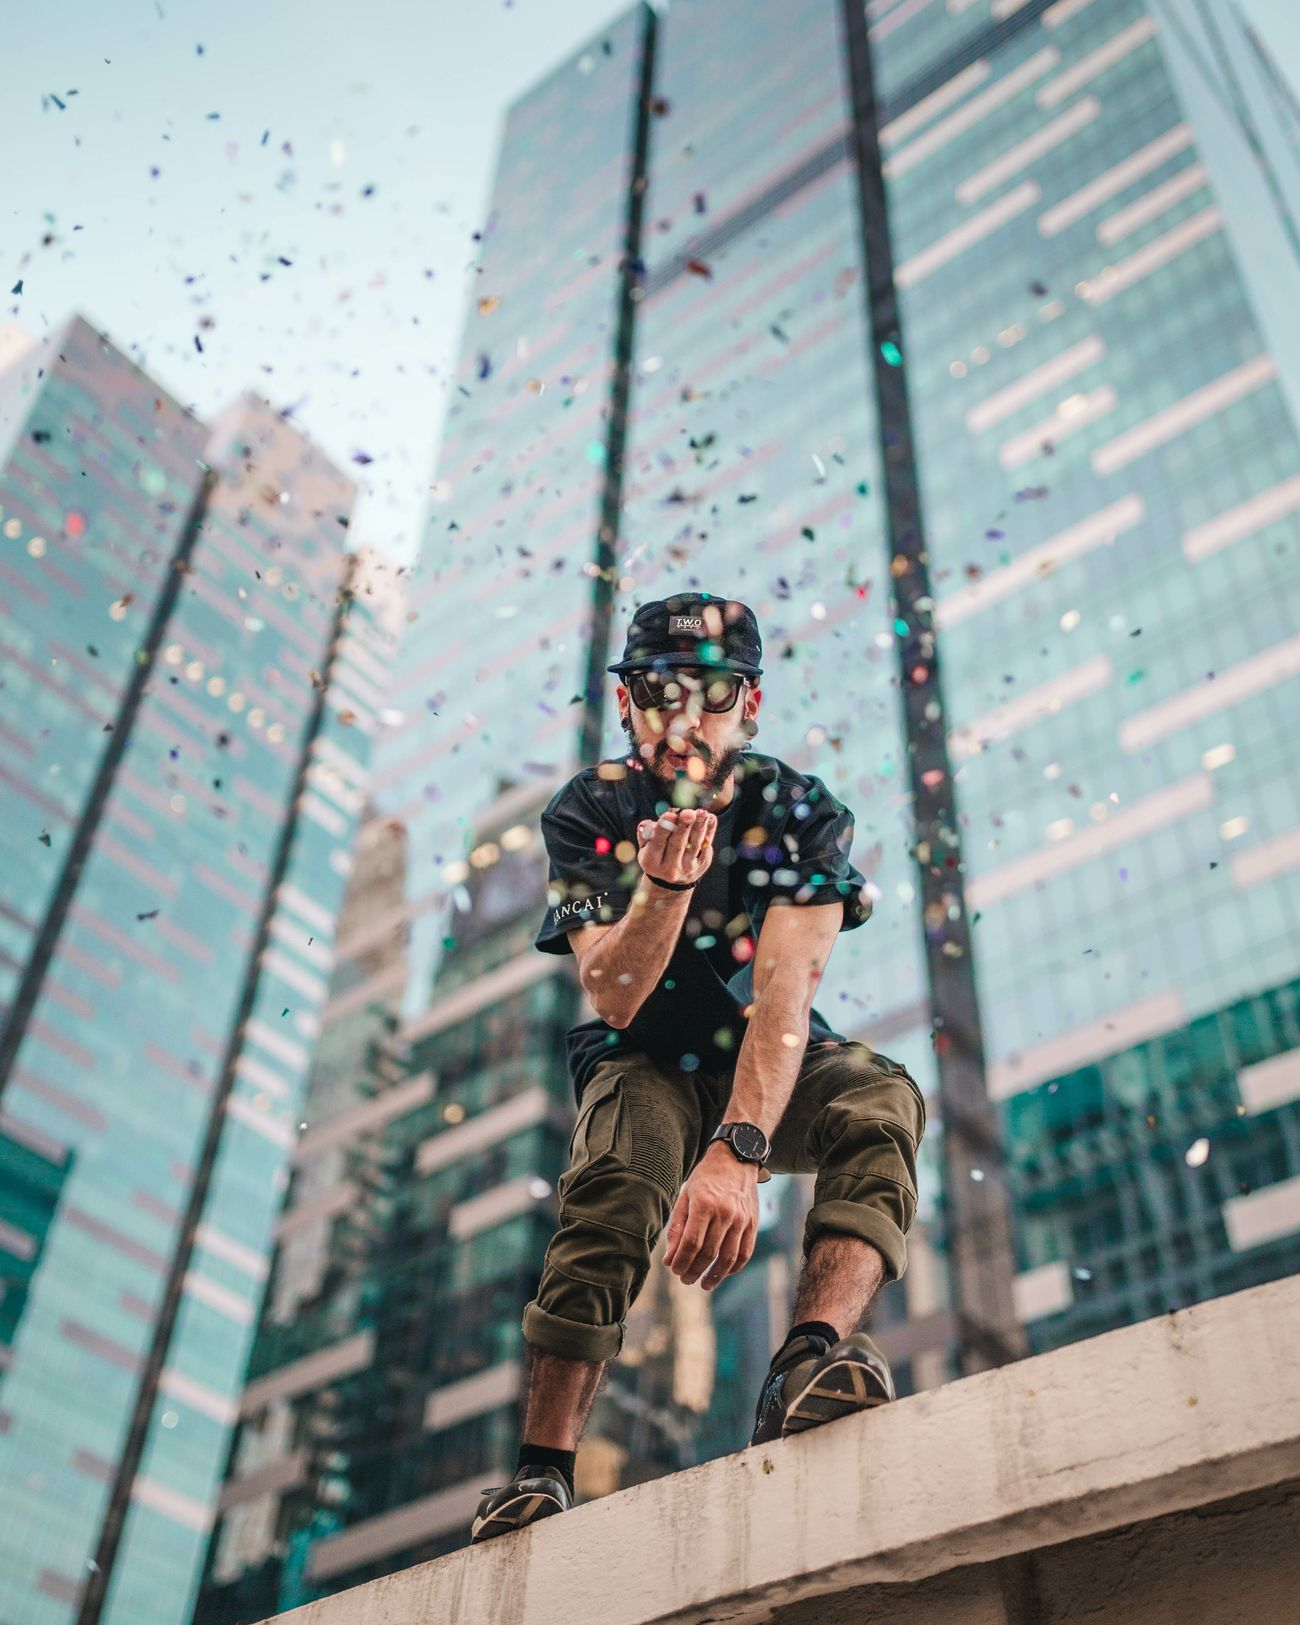 kissing 2016 goodbye Blowing Kisses Confetti Street Fashion Hypebeast  Portrait Portrait Of A Man  Portrait Photography One Man Only Singapore City City Life Architecture Roof Top Fine Art Photography Bokeh Photography